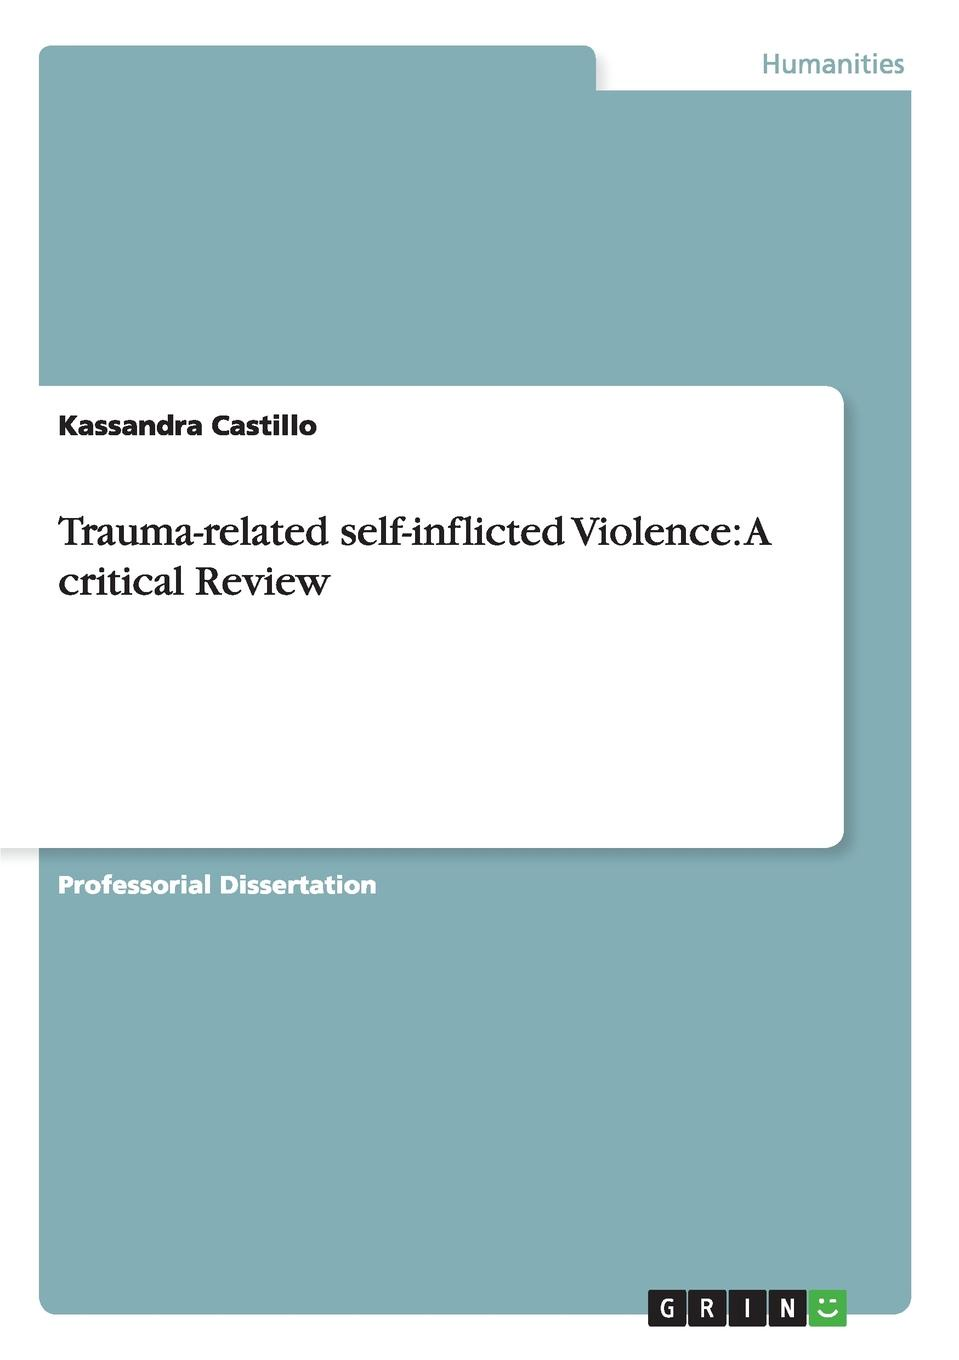 Kassandra Castillo Trauma-related self-inflicted Violence. A critical Review tom billington critical educational psychology